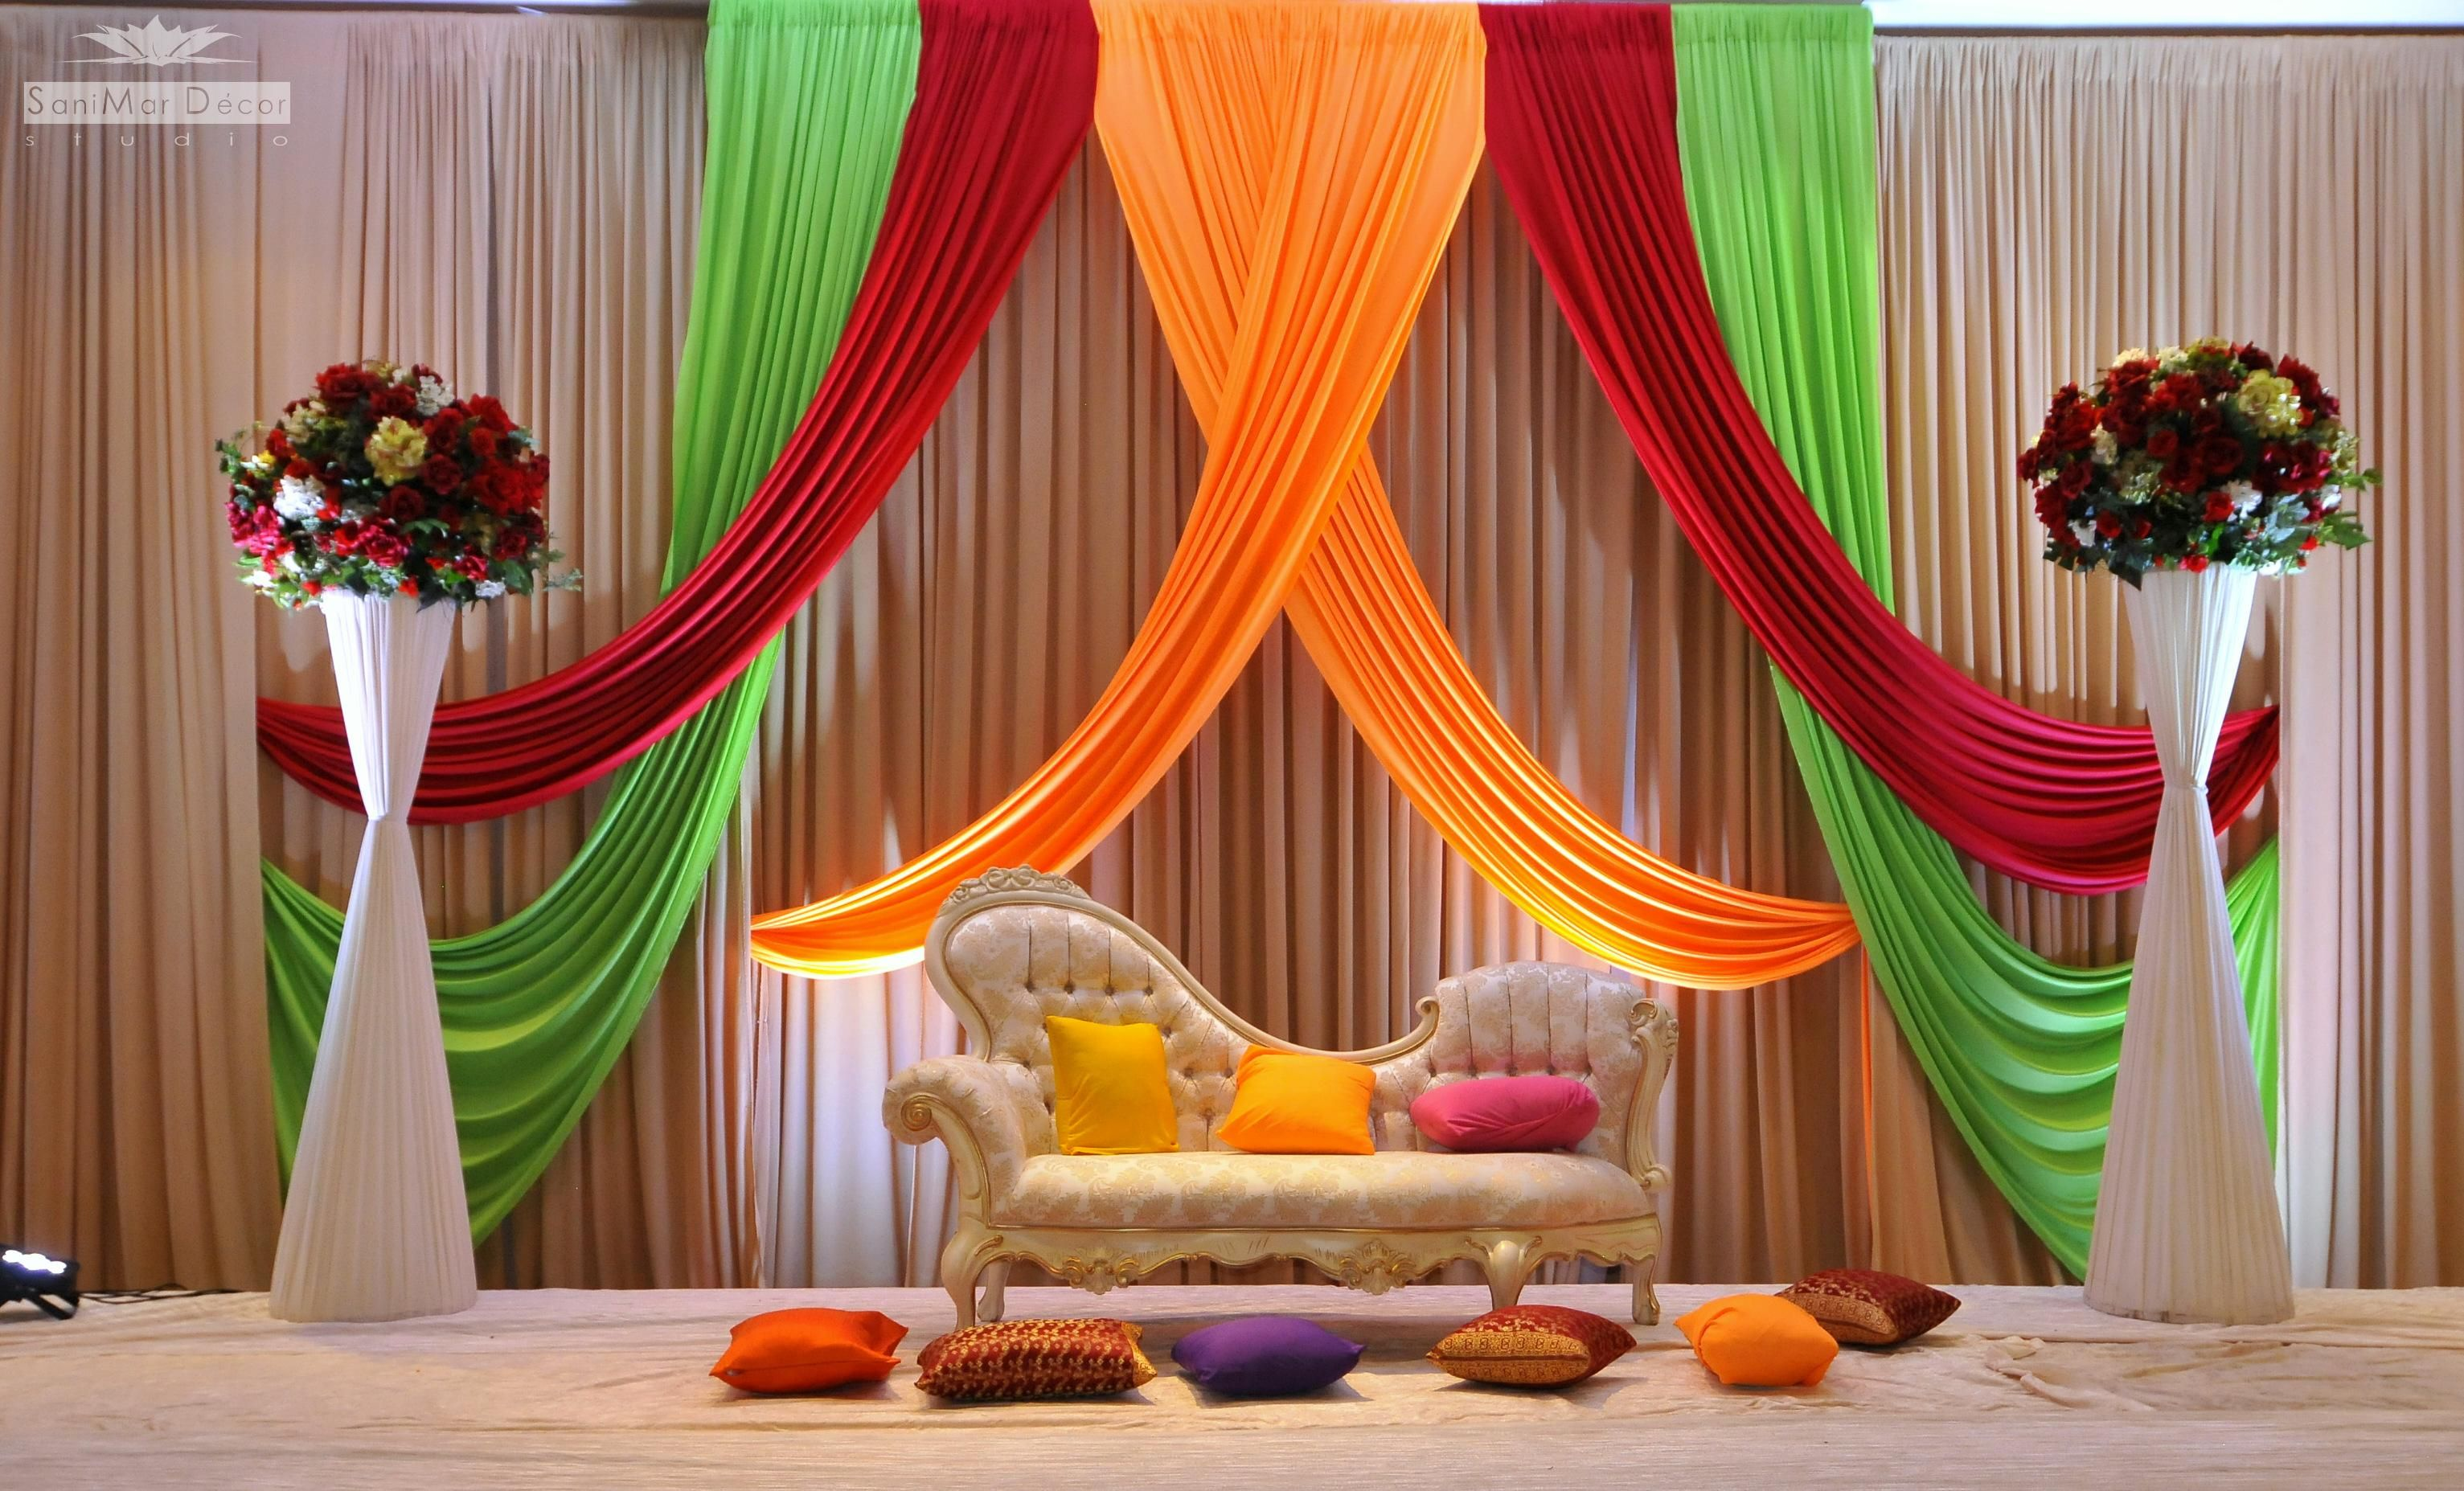 Wedding stage decoration wedding decorations natural for Wedding house decoration ideas